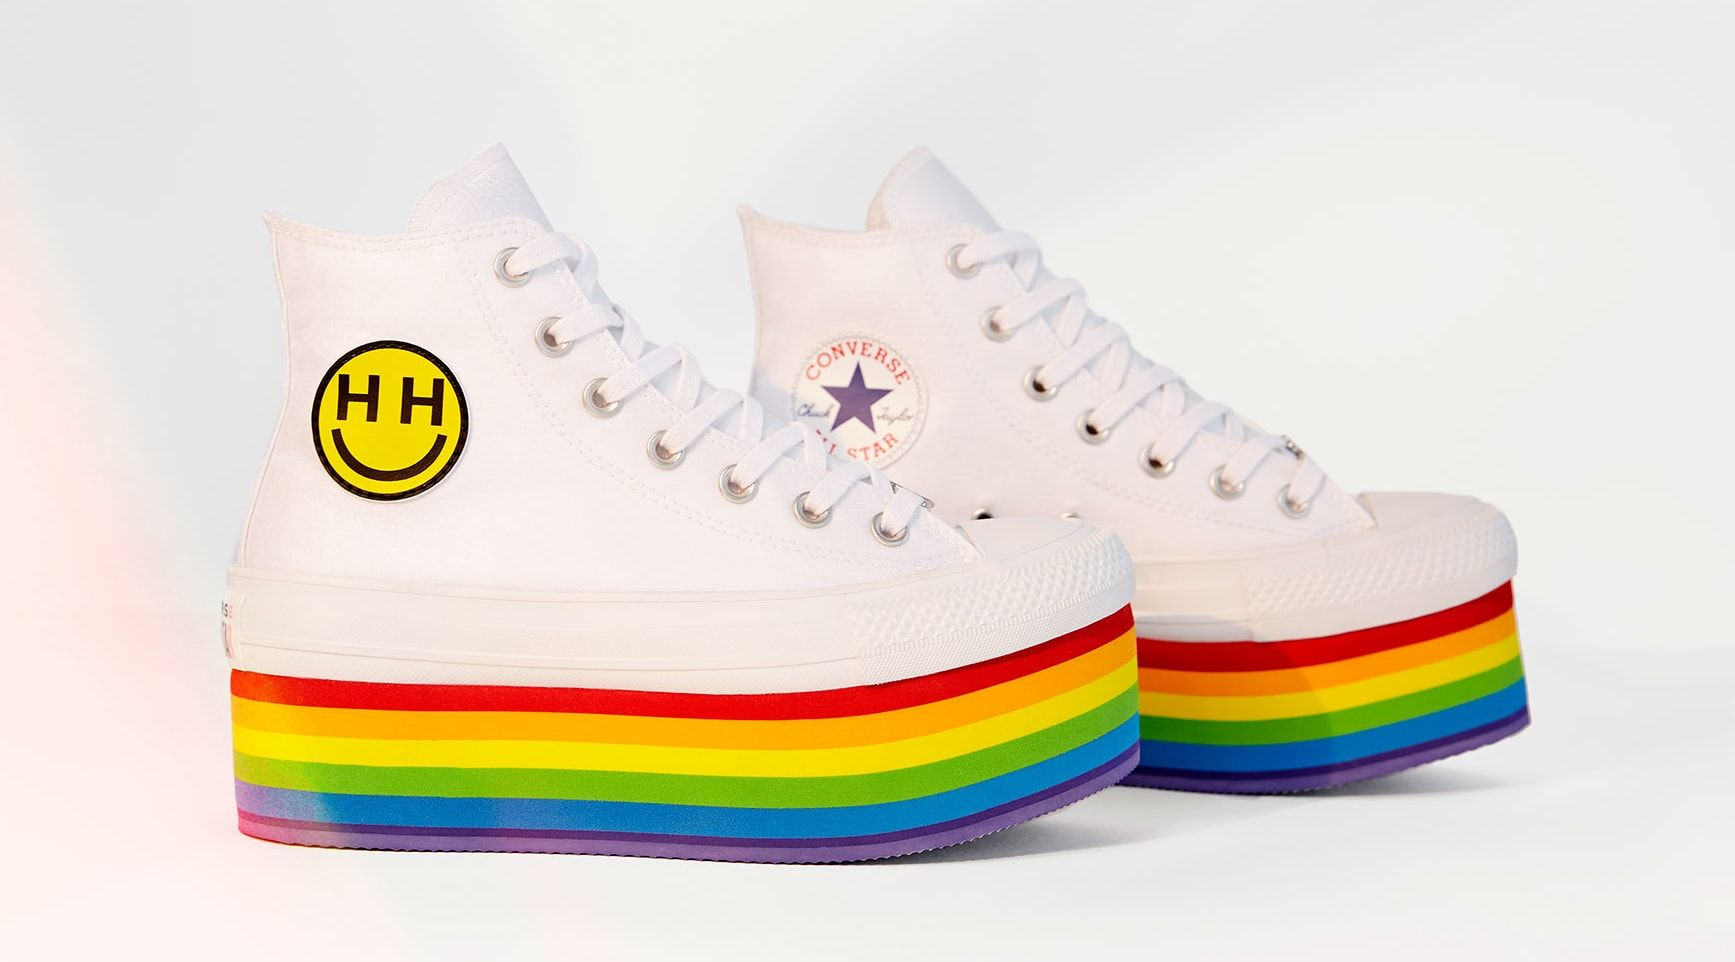 Miley Cyrus × Happy Hippie Foundation × Converse  cbe80ed3b